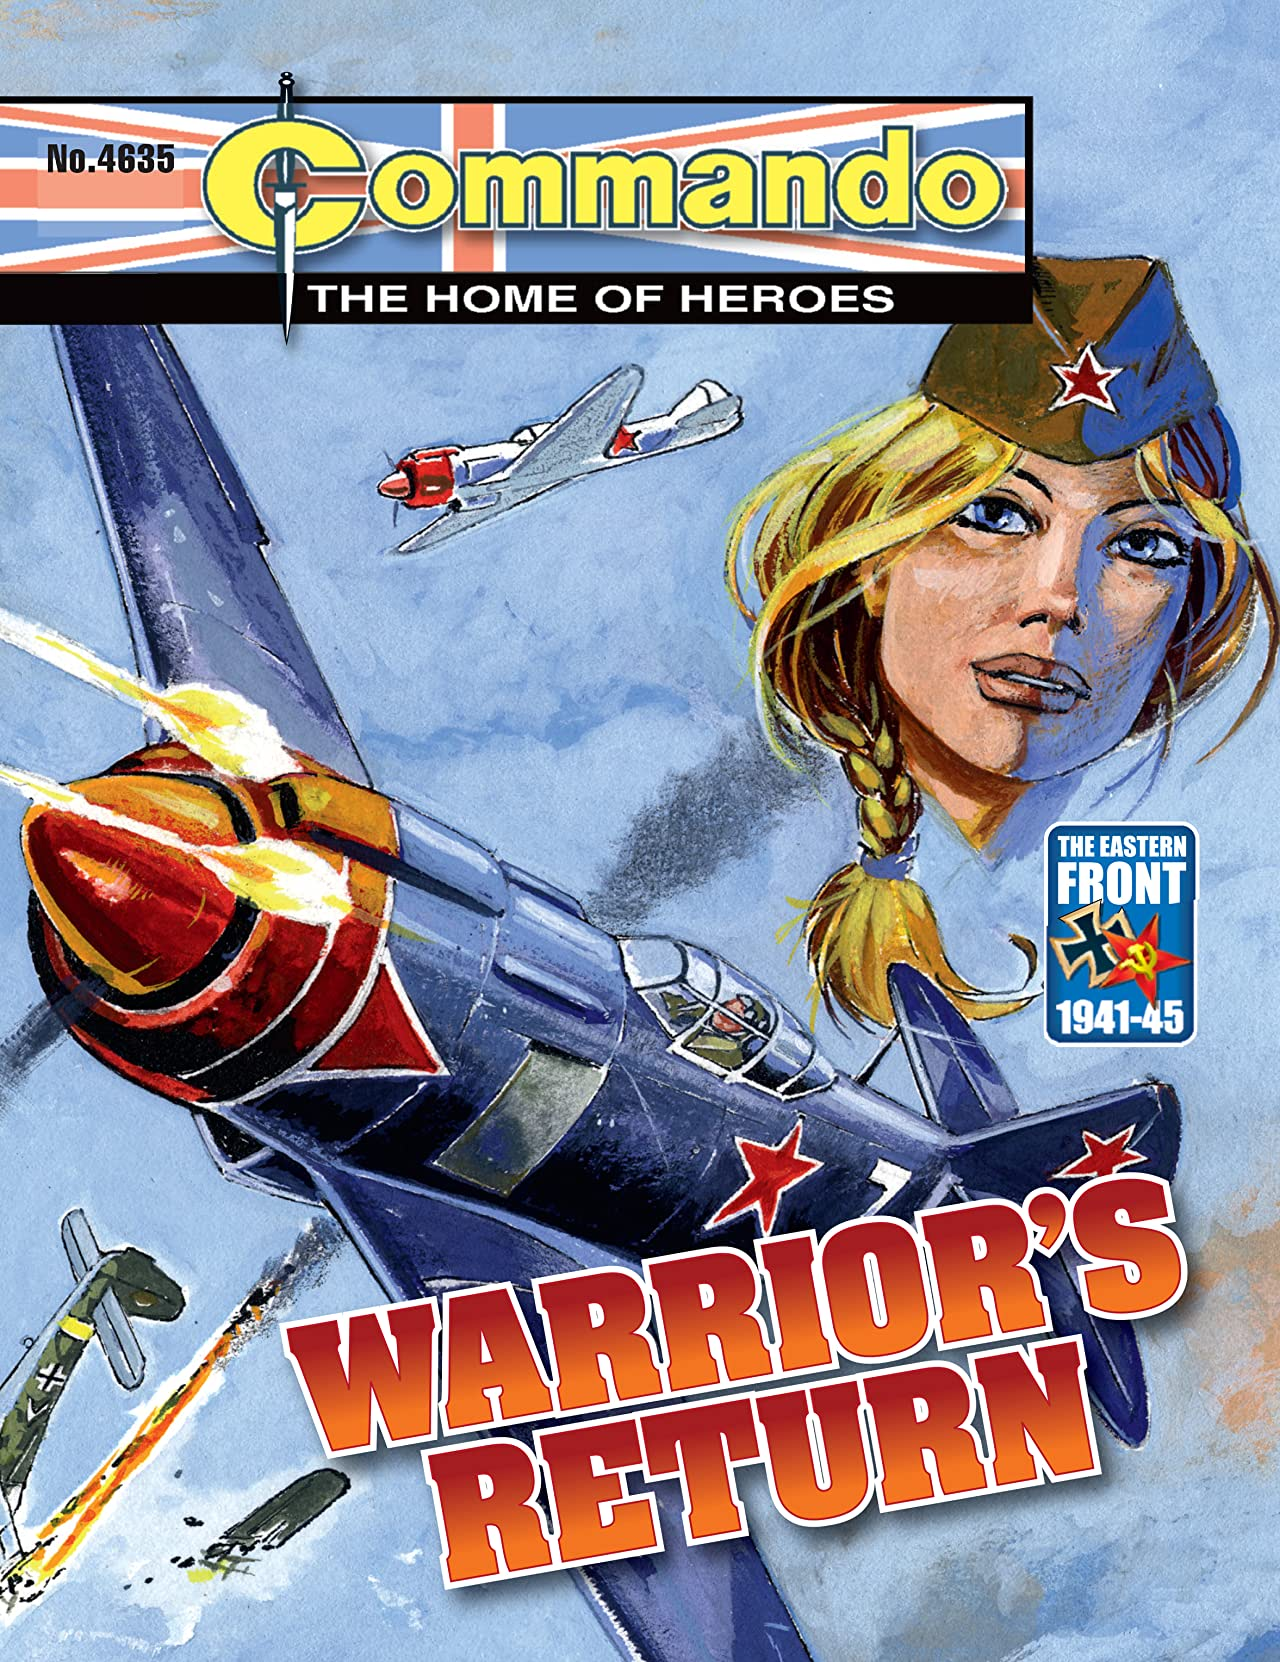 Commando #4635: Warrior's Return